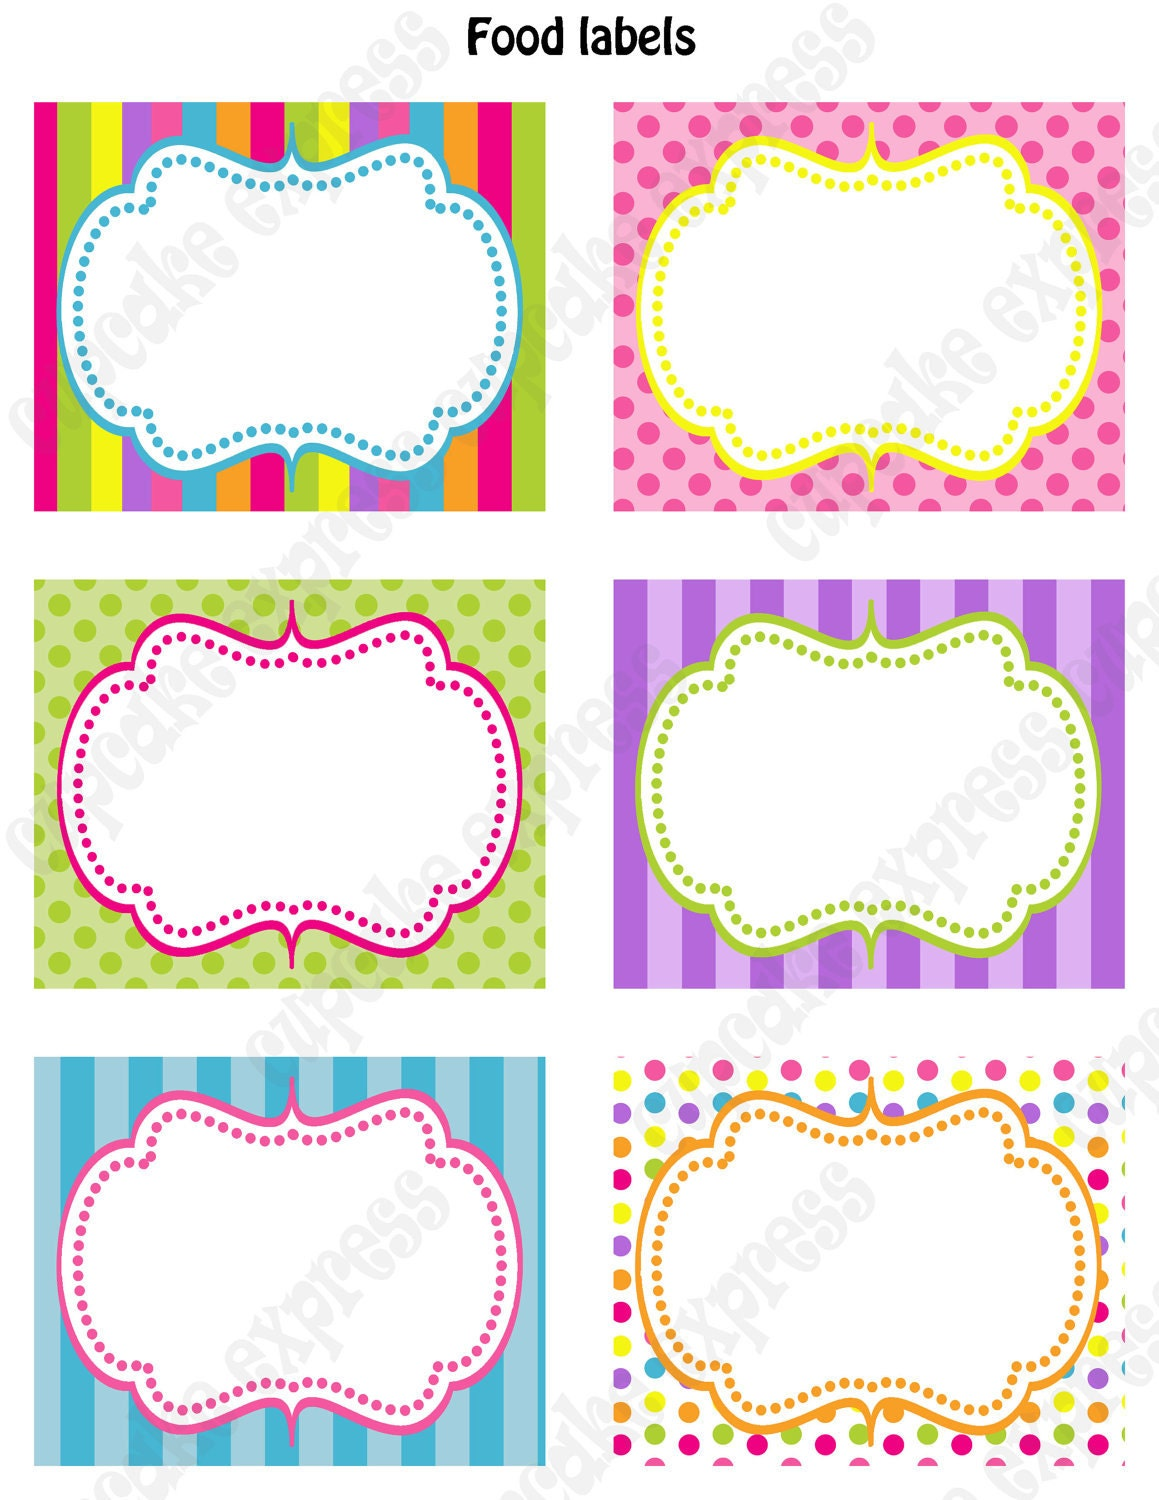 baby food jar label template - candy shoppe birthday party printable food labels pink green